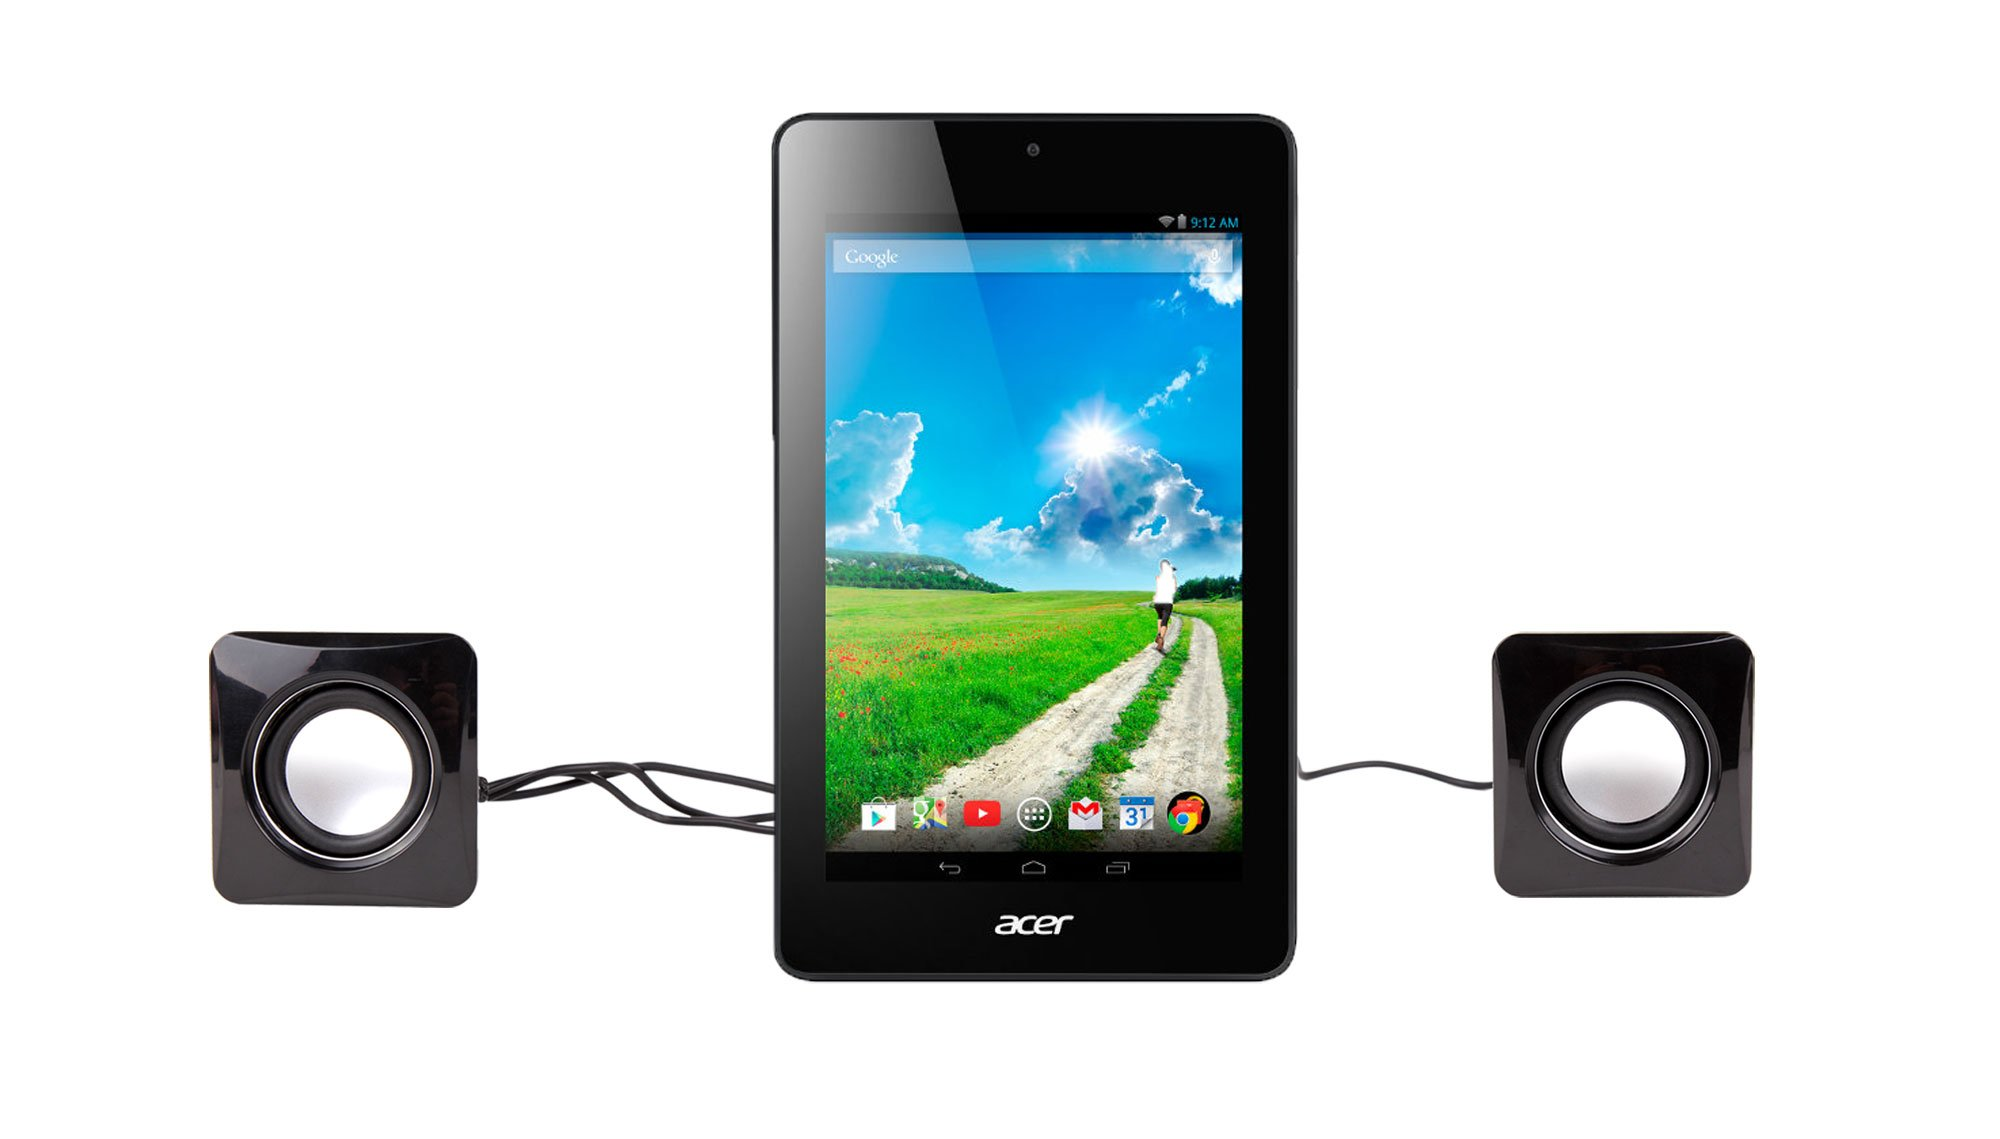 DURAGADGET Small & Portable USB Powered DVD's Speakers With Volume Dial For Acer Iconia One 7 B1-730, Acer Iconia Tab 7 A1-713HD, Acer Iconia Tab 7 A1-713